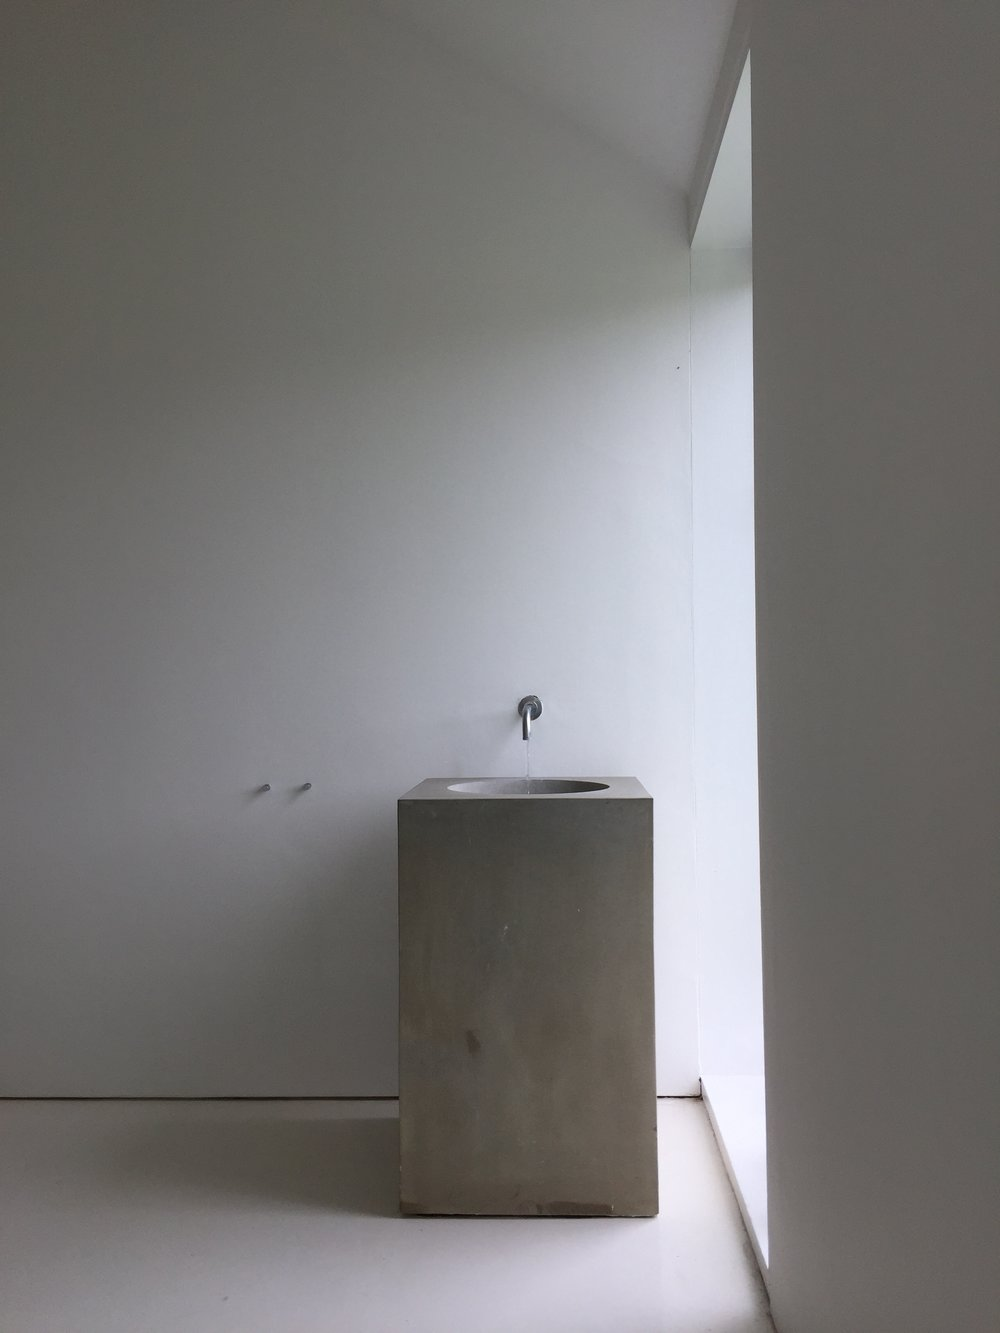 I just adore the simplicity of design of this concrete basin, creates a real calmness. This stunning location, 'Tilty Barn' was remodelled by Architect John Pawson